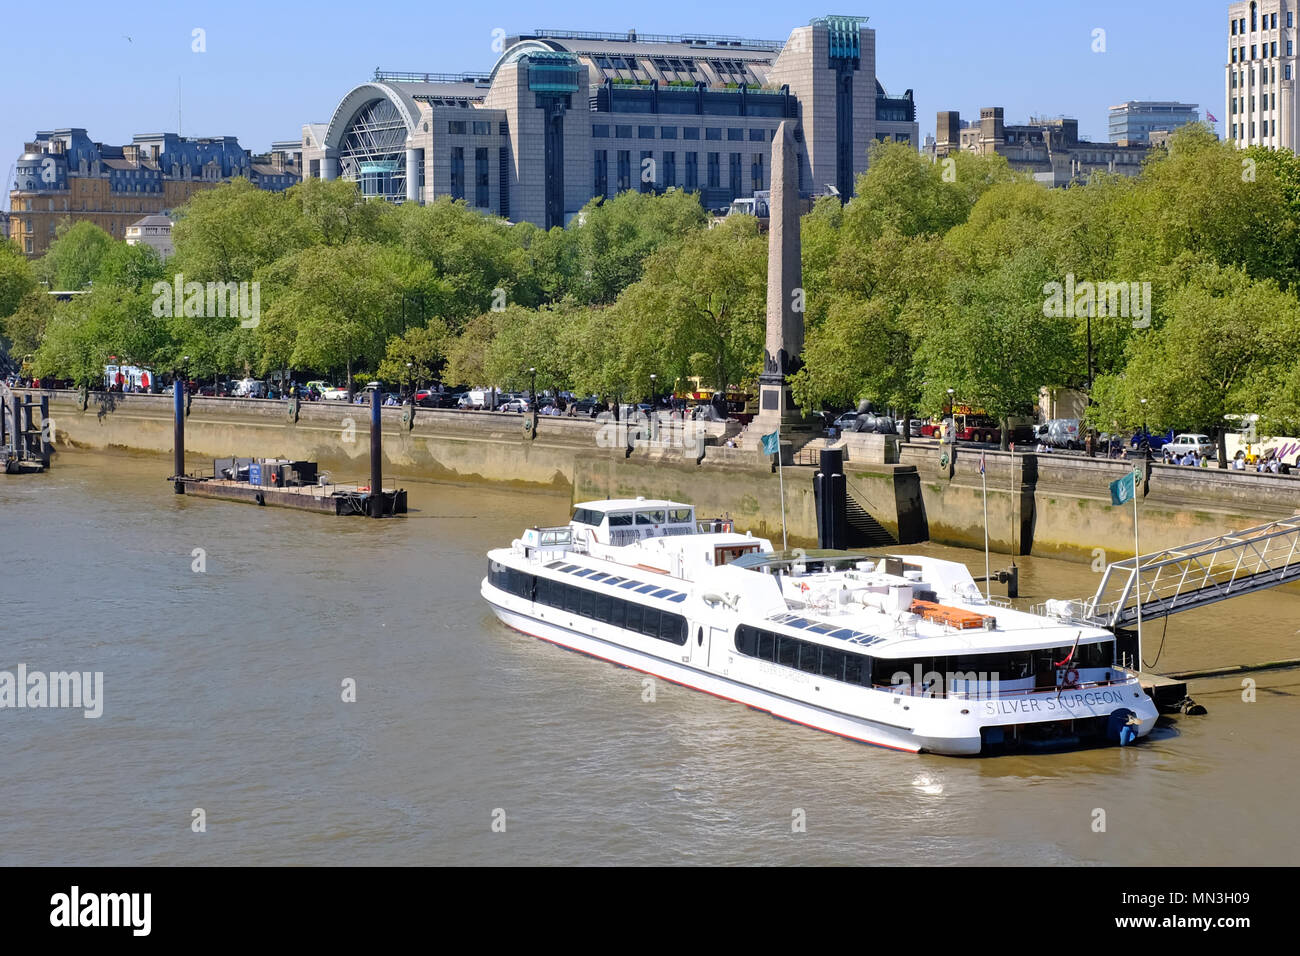 View from Waterloo Bridge of a river cruise boat  - London - Stock Image